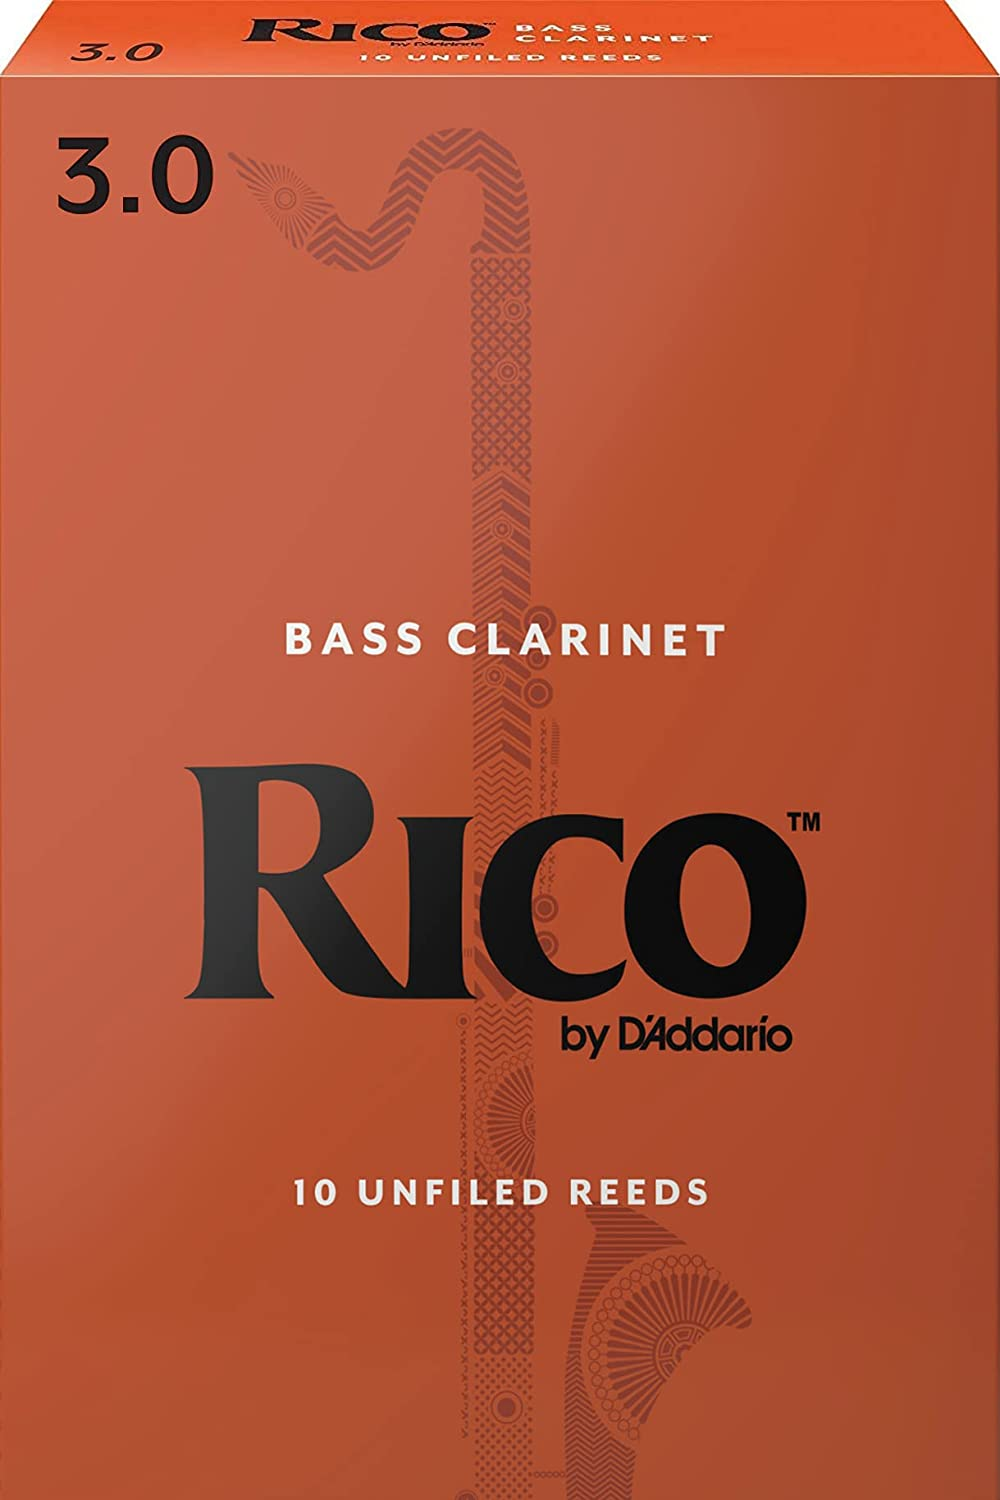 Rico Bass Clarinet Some reservation Reeds 3.0 Strength Fixed price for sale 10-pack